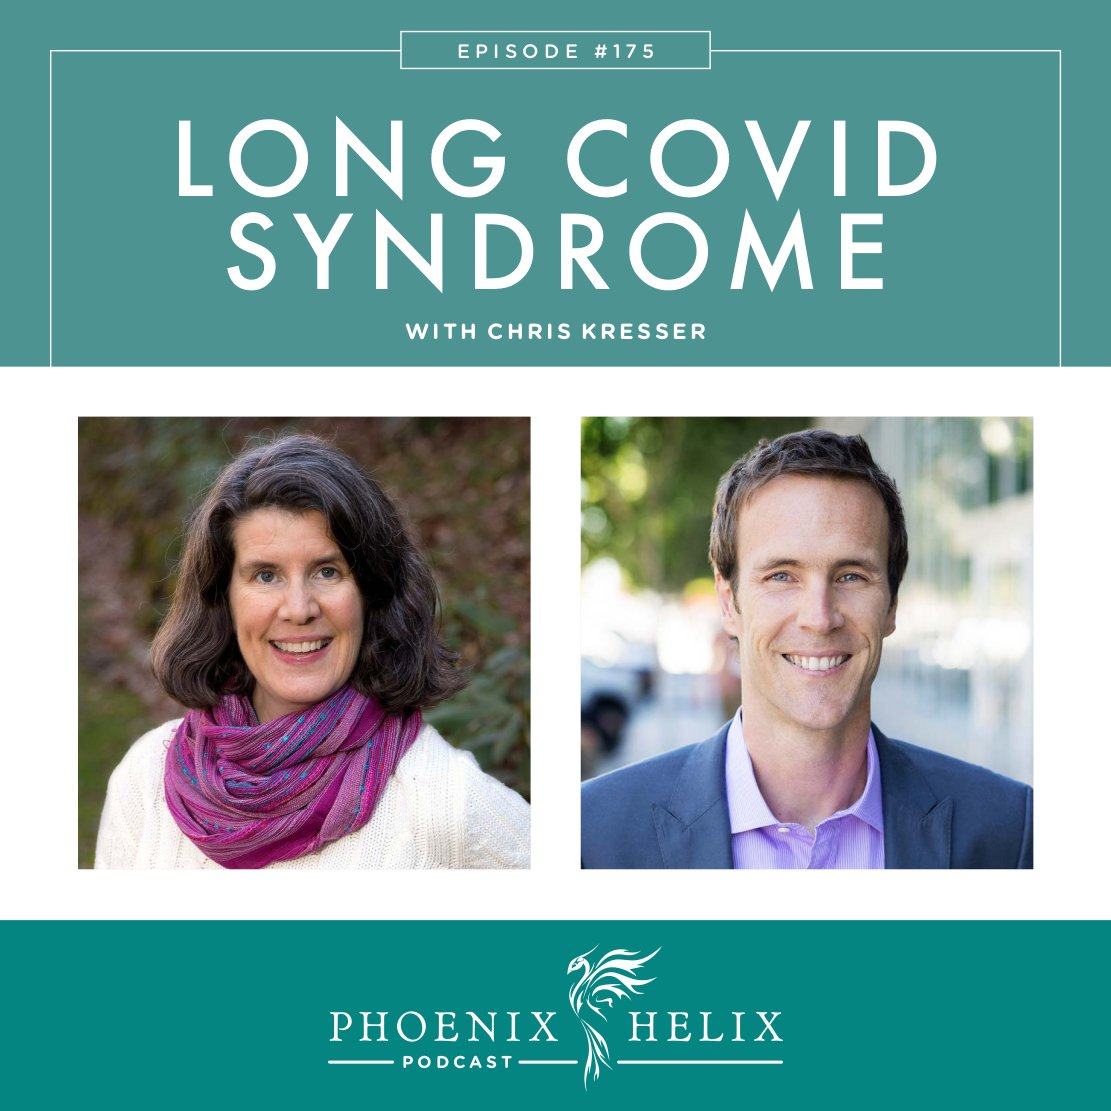 Long COVID Syndrome with Chris Kresser | Phoenix Helix Podcast